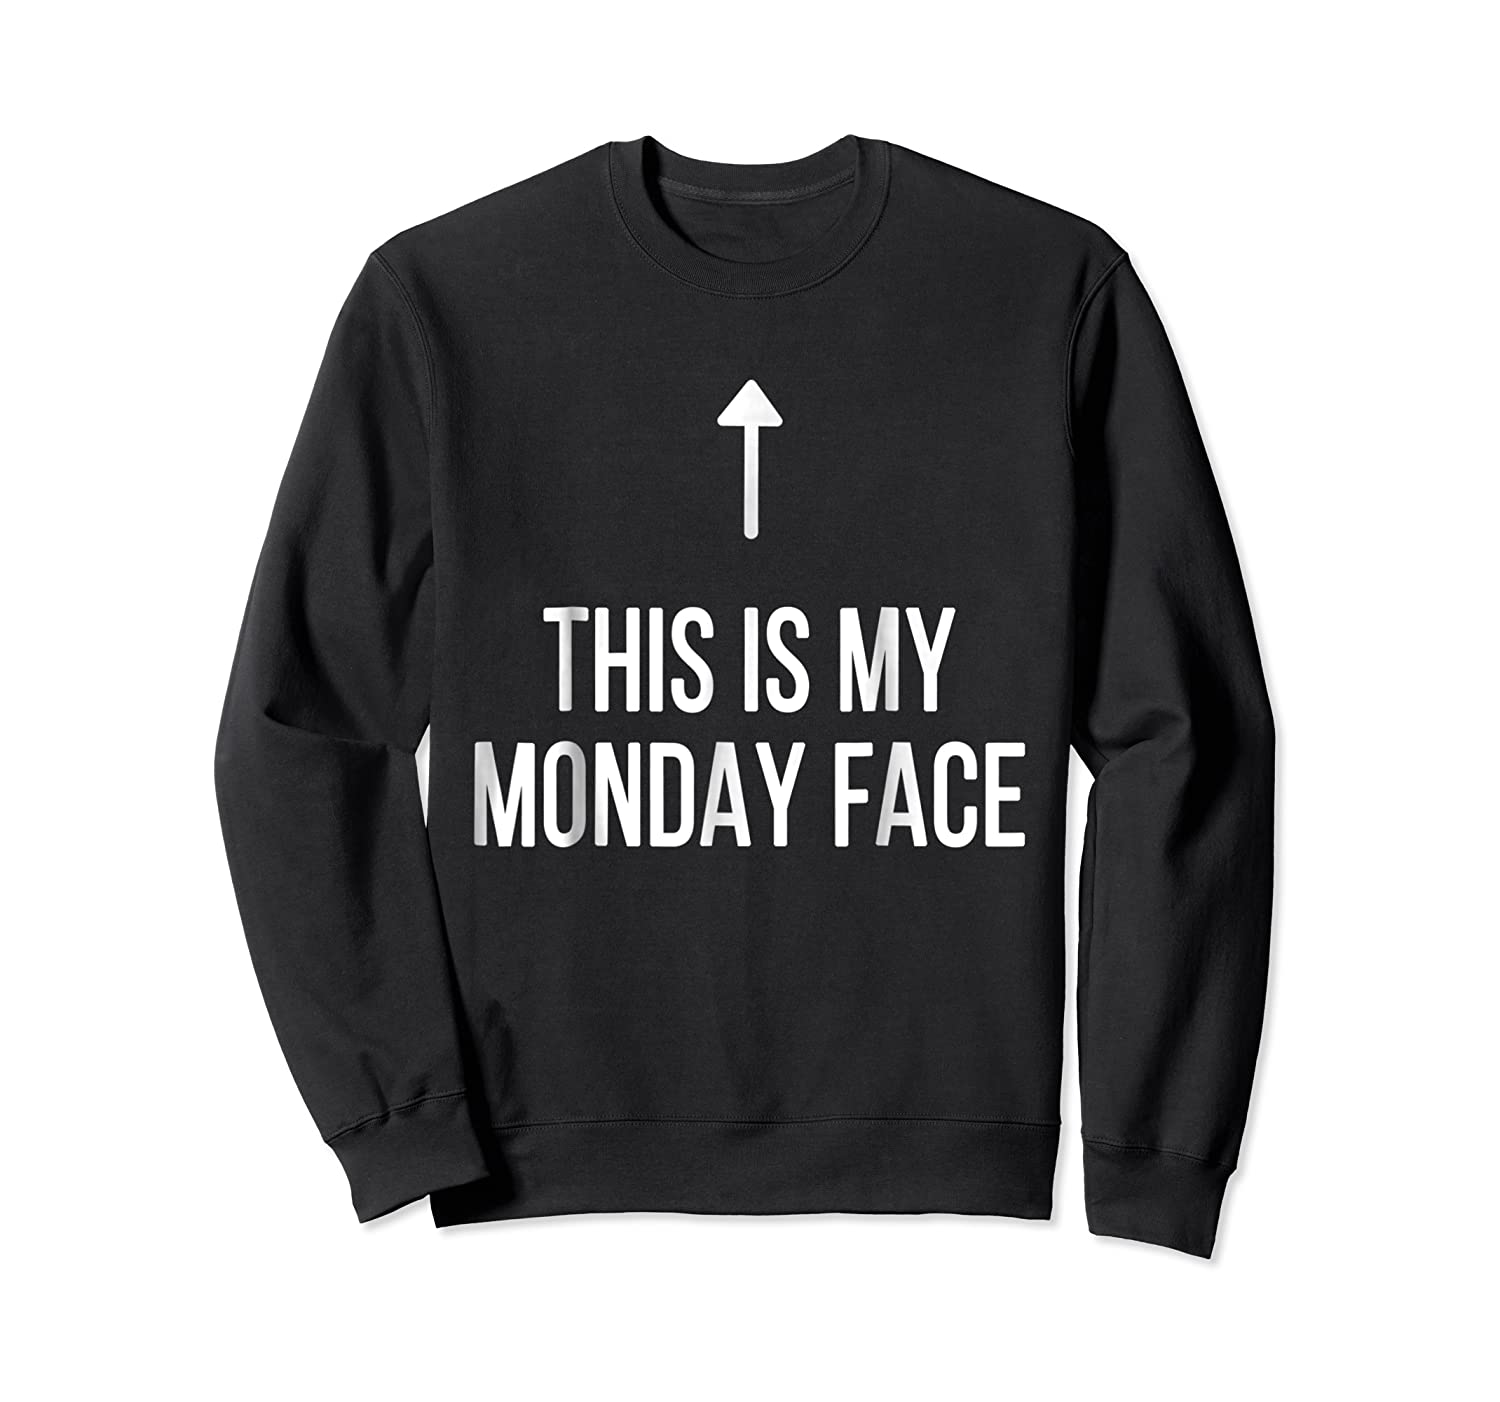 This Is My Monday Face - Funny Monday Shirt Crewneck Sweater